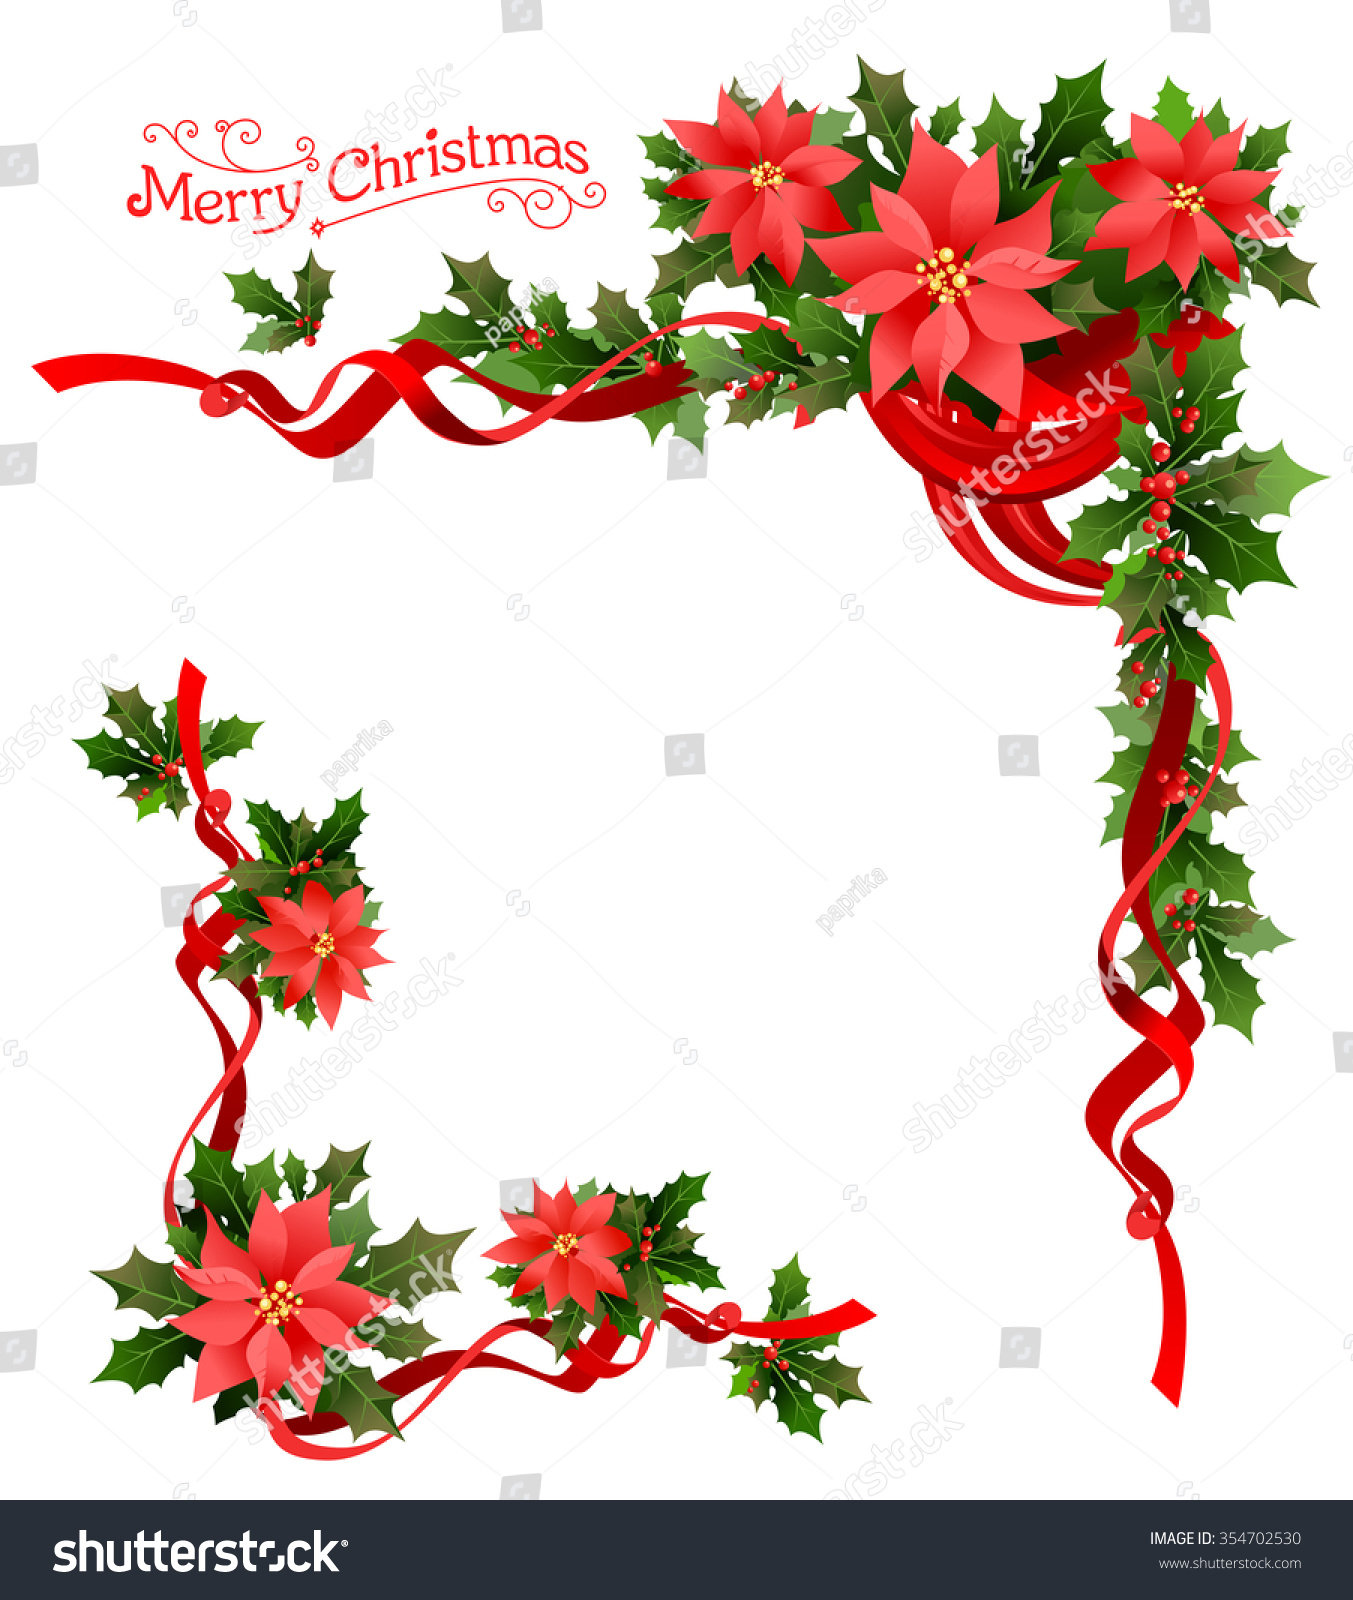 Christmas poinsettia corner holiday elements design stock for 5ft poinsettia garland christmas decoration